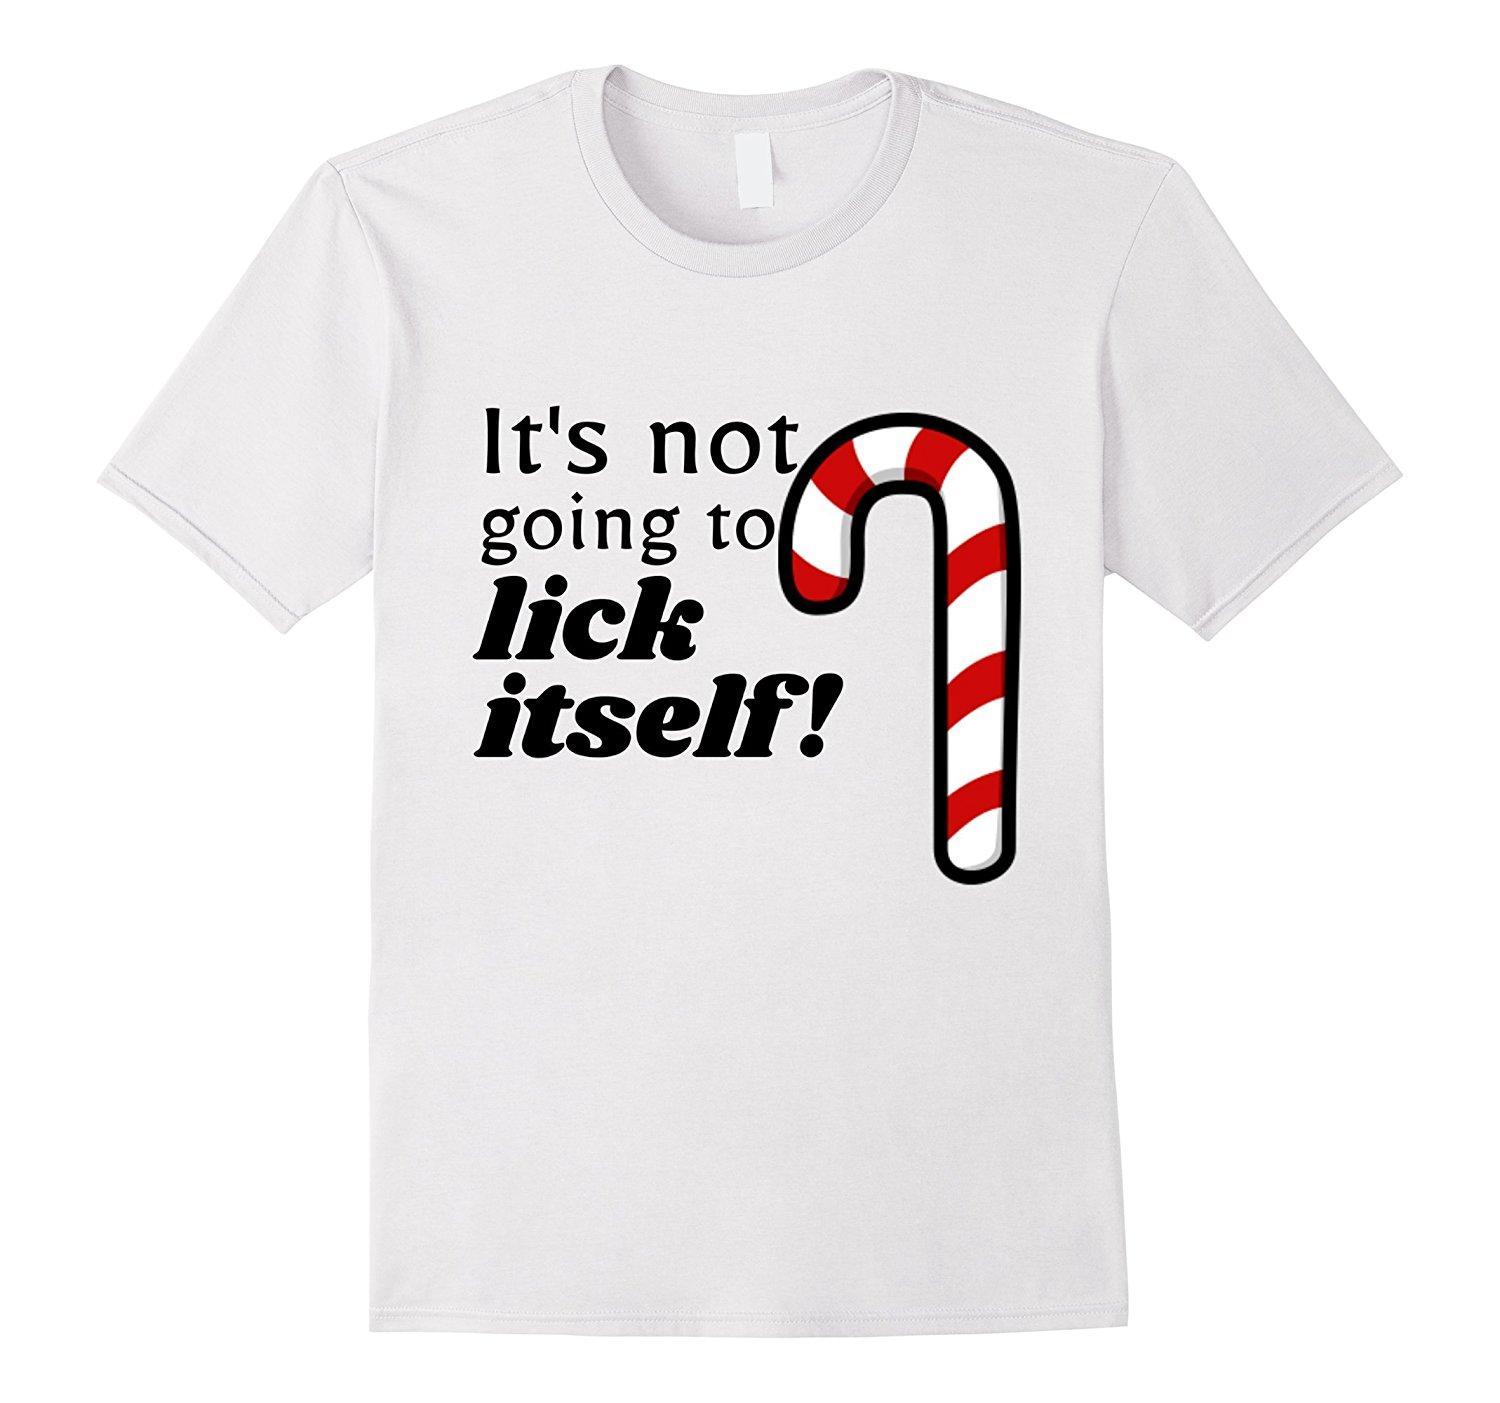 951504c98 Christmas Adult Funny Candy Cane Lick T Shirt Humor New Funny Brand Clothing  Top Teeprint Tee Shirts Summer Short Crazy T Shirt Sayings Tee Shirt Shop  ...